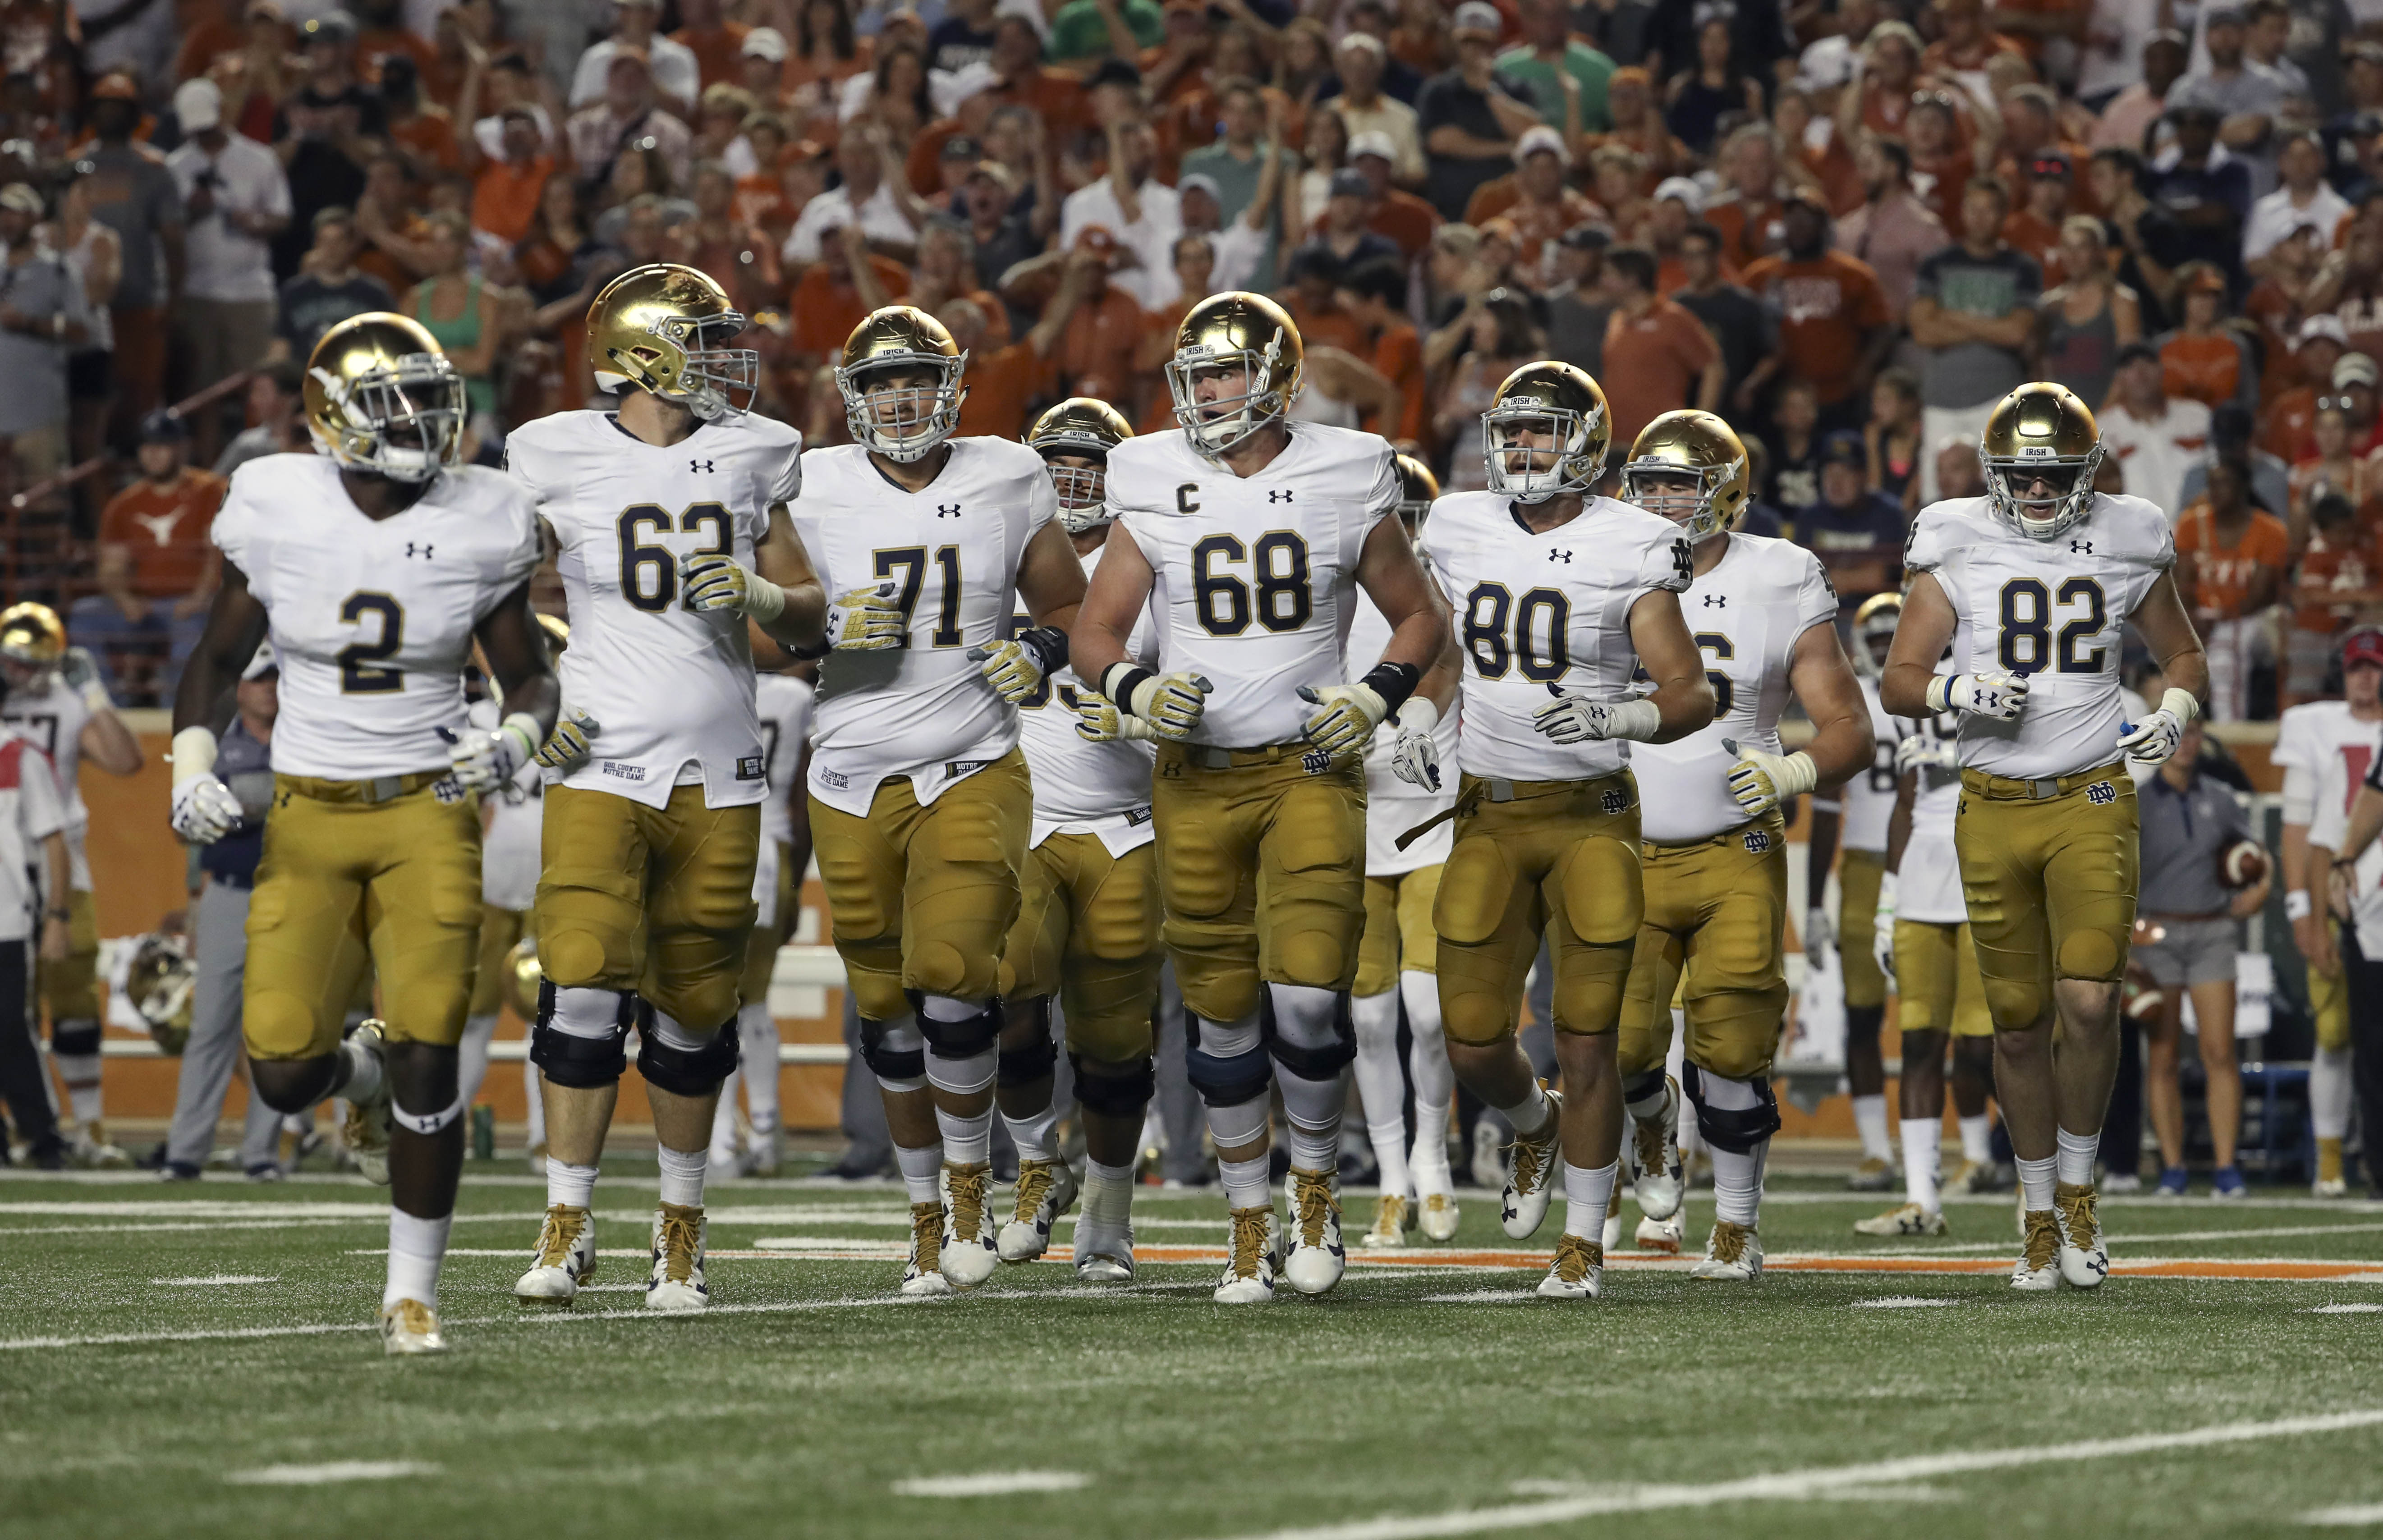 notre dame football - photo #4